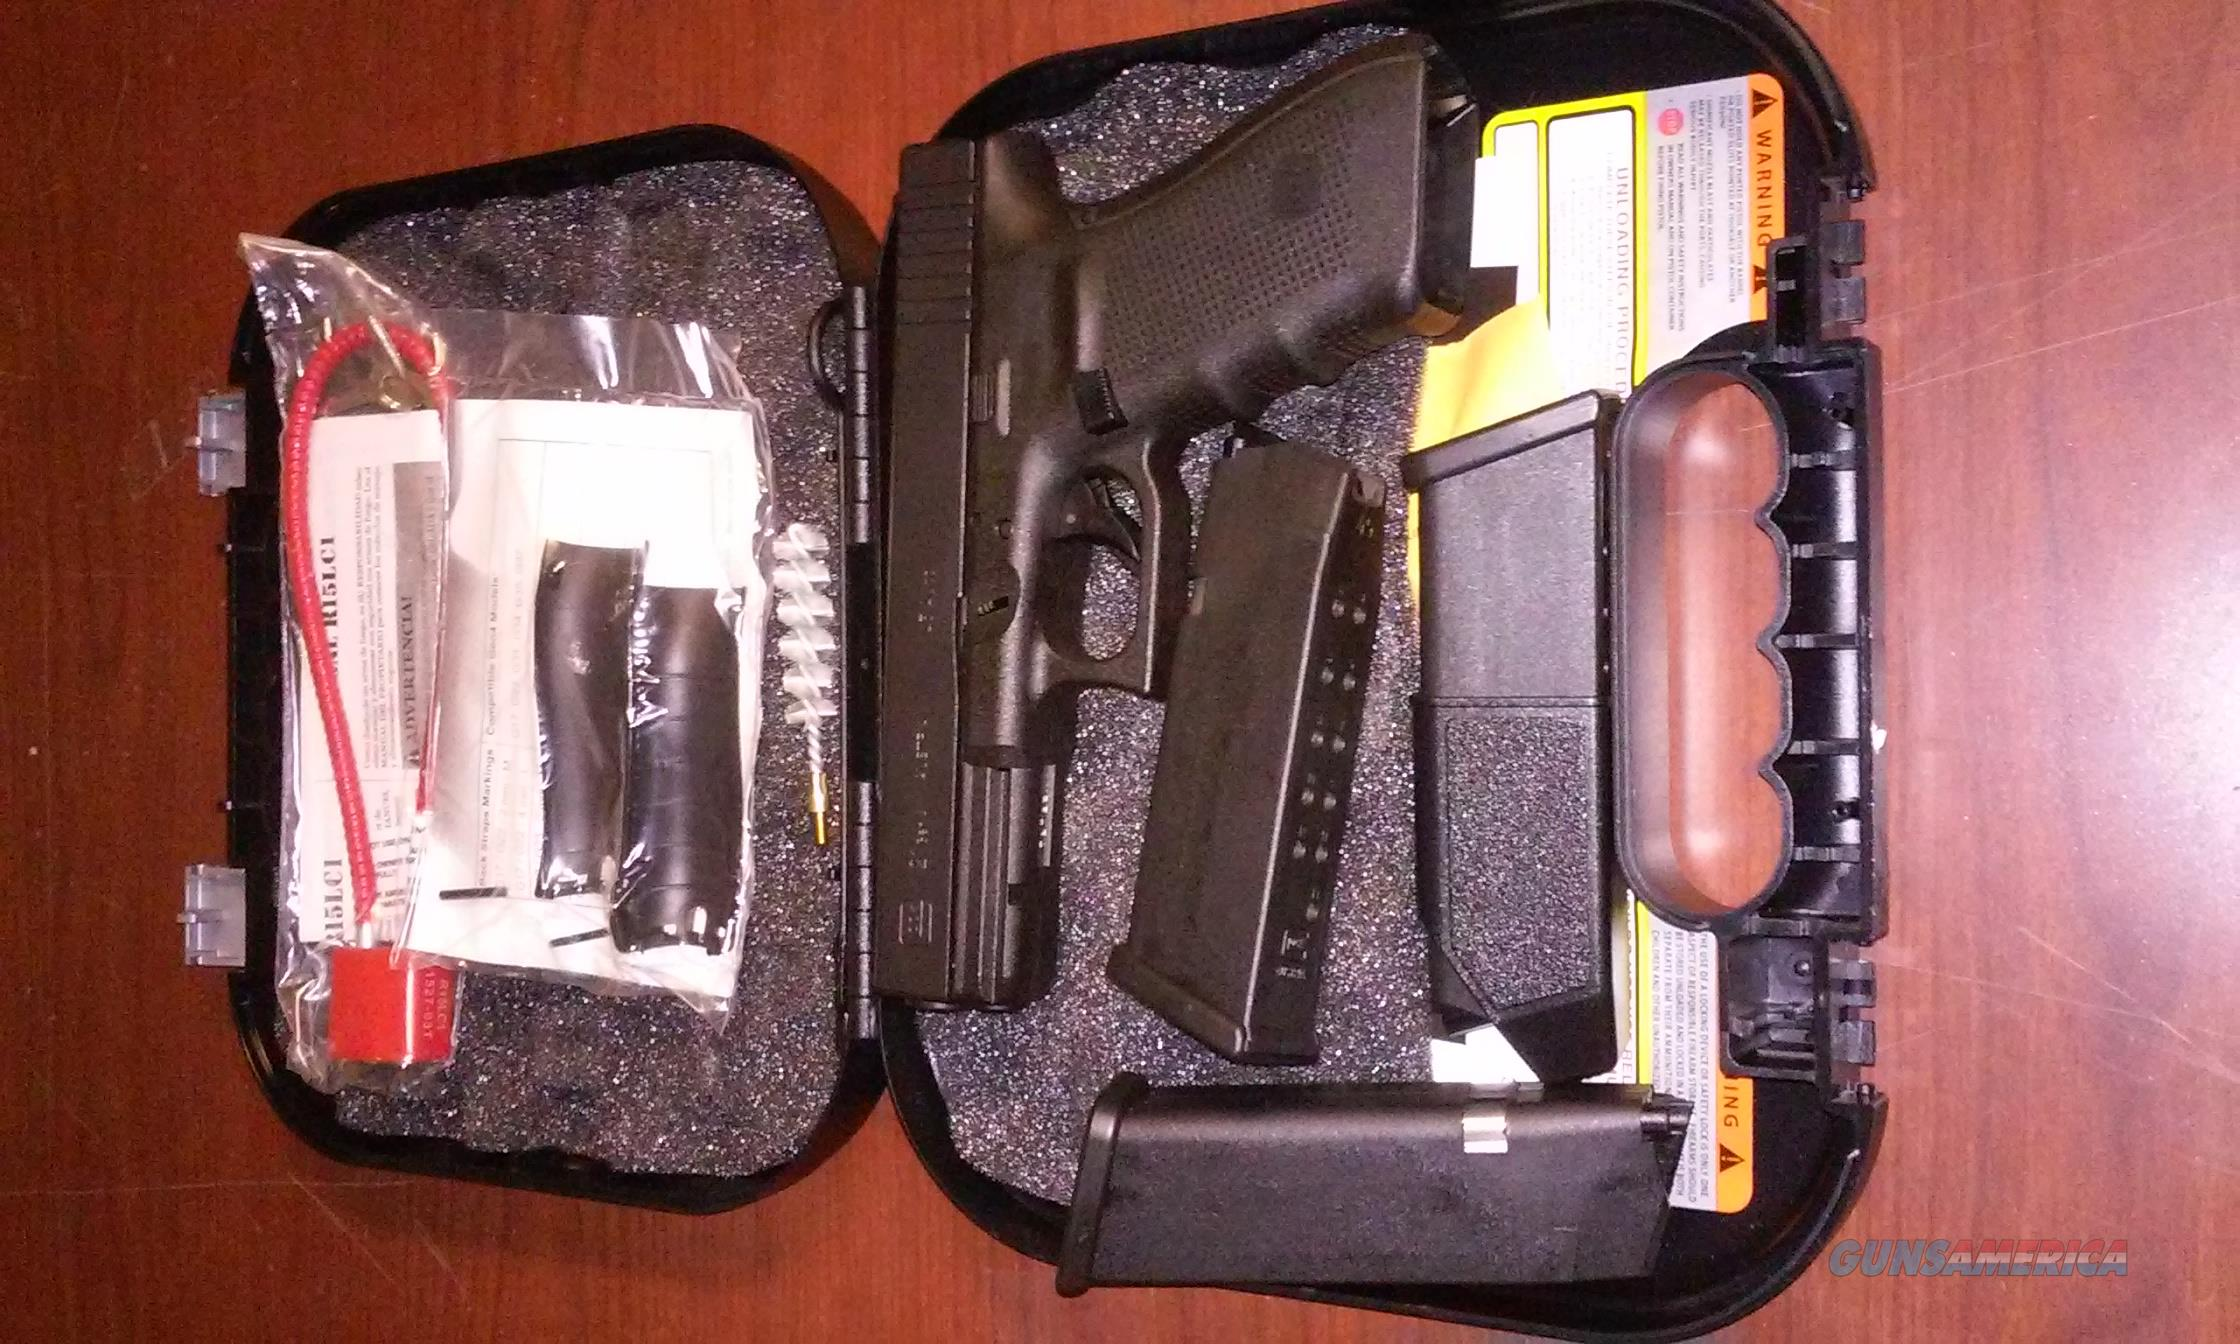 Glock 21 Gen 4 .45 Auto New In Box With 3 13 Round Magazines  Guns > Pistols > Glock Pistols > 20/21